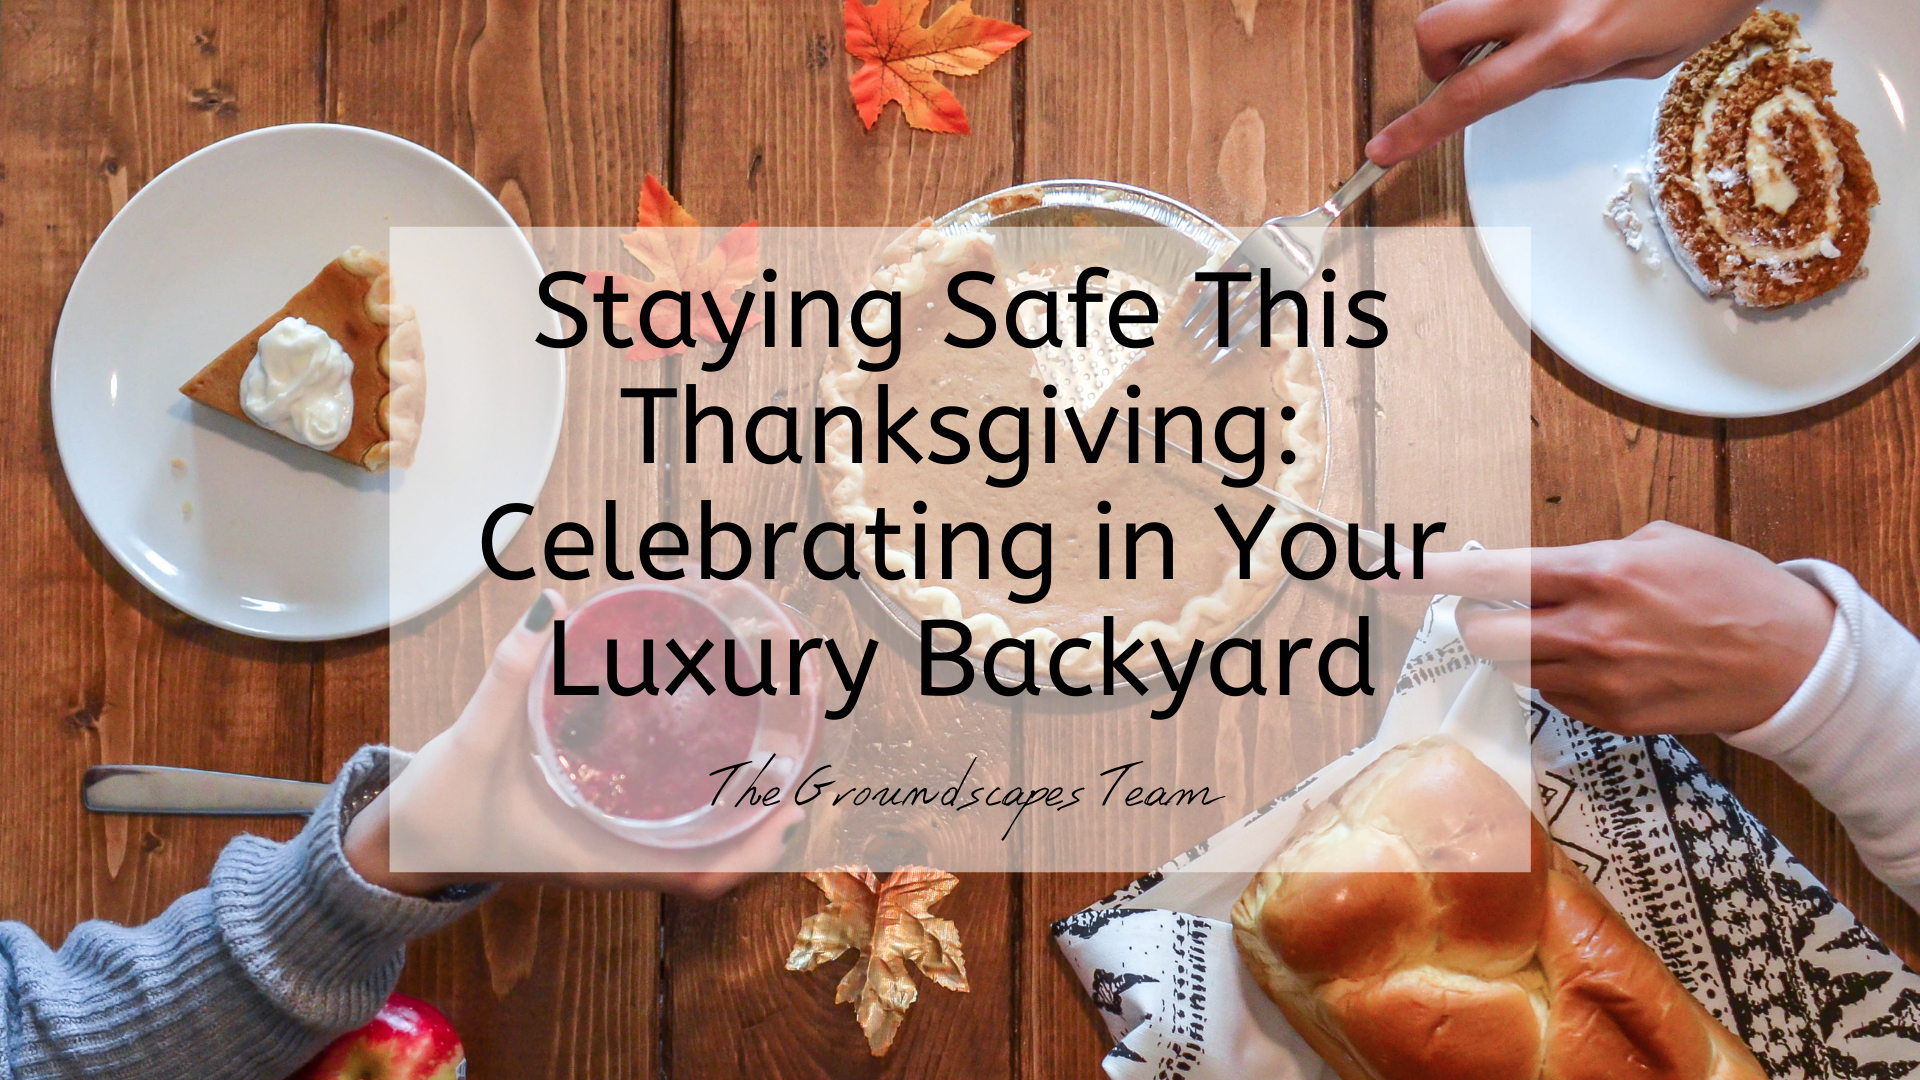 Staying Safe This Thanksgiving: Celebrating in Your Luxury Backyard